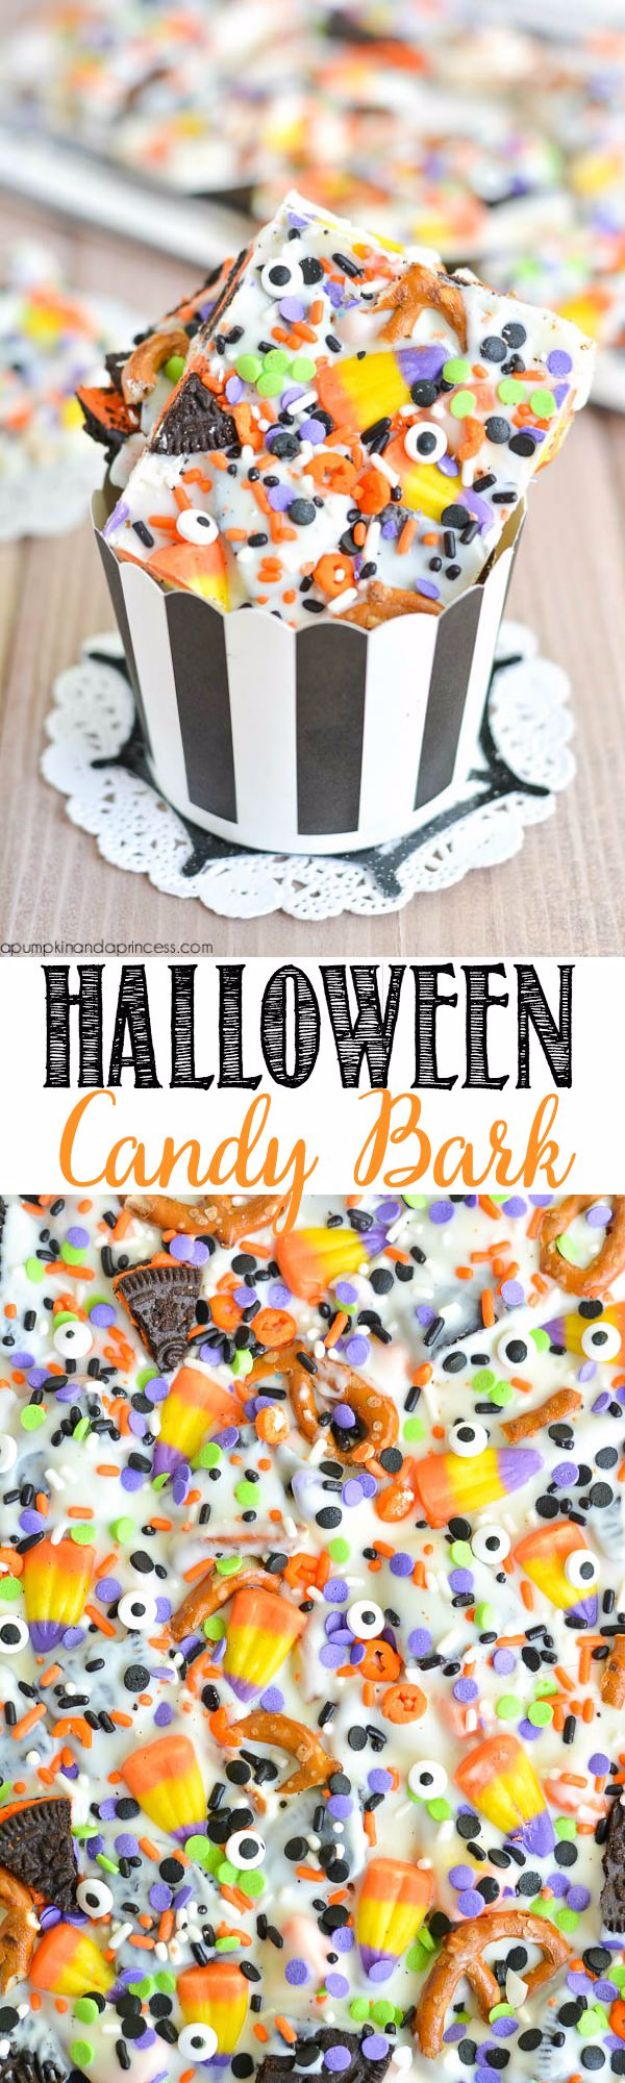 Easy Halloween Party Snacks - Halloween Candy Bark Recipe- Healthy Recipes for Halloween Food Ideas for Kids for School, Teens and Adults - Easy and Quick Recipes and Idea for Dips, Chips, Spooky Cookies and Treats - Appetizers and Finger Foods Made With Vegetables, No Candy, Cheap Food, Scary DIY Party Foods With Step by Step Tutorials #halloween #halloweenrecipes #halloweenparty